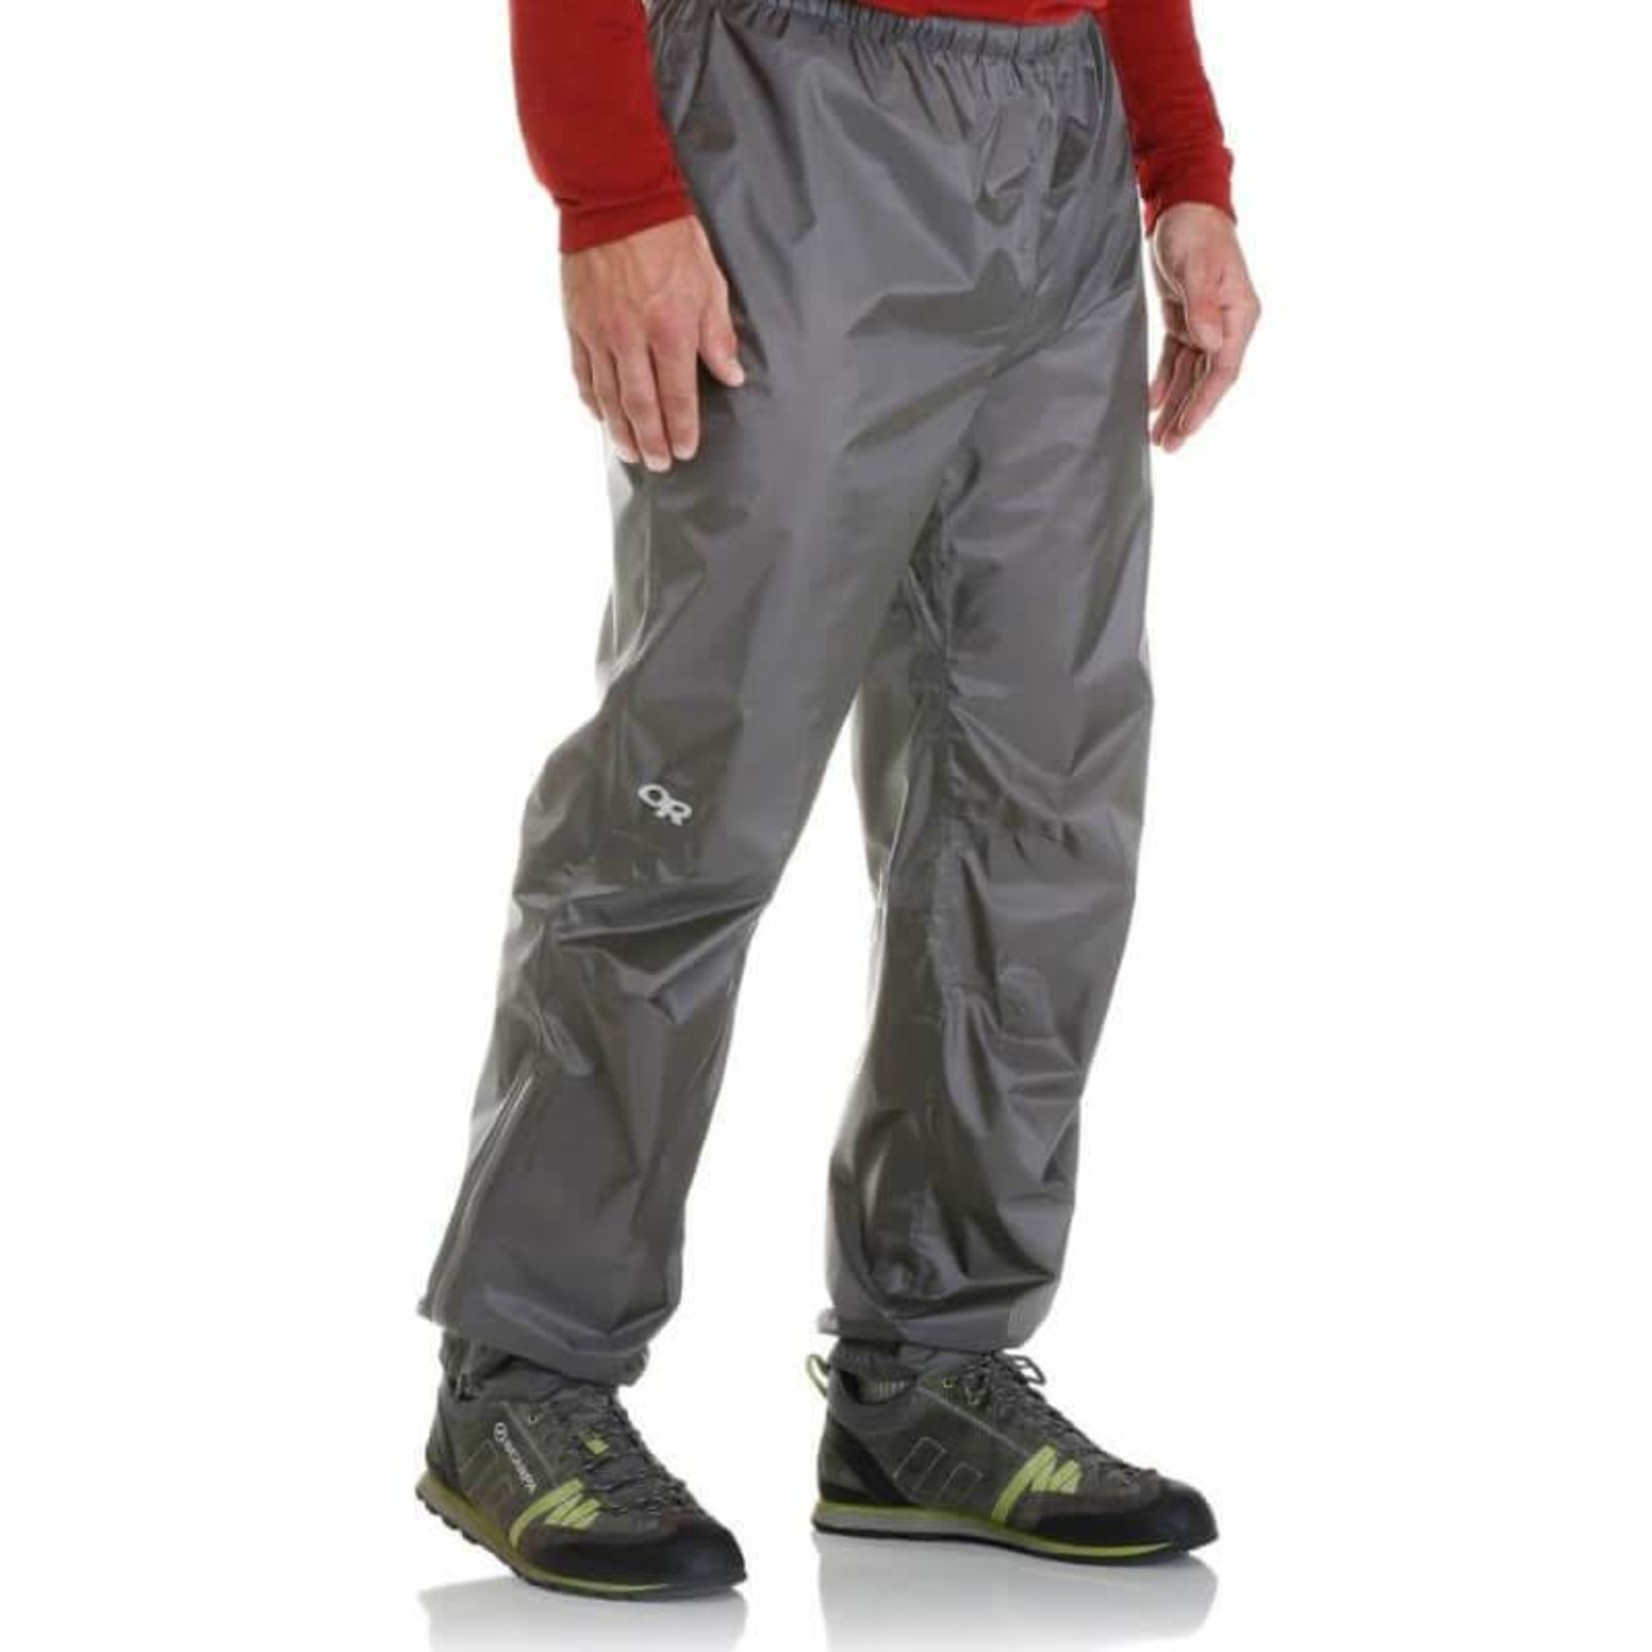 Outdoor Research Pantalon imperméable Outdoor Researh Helium - Homme